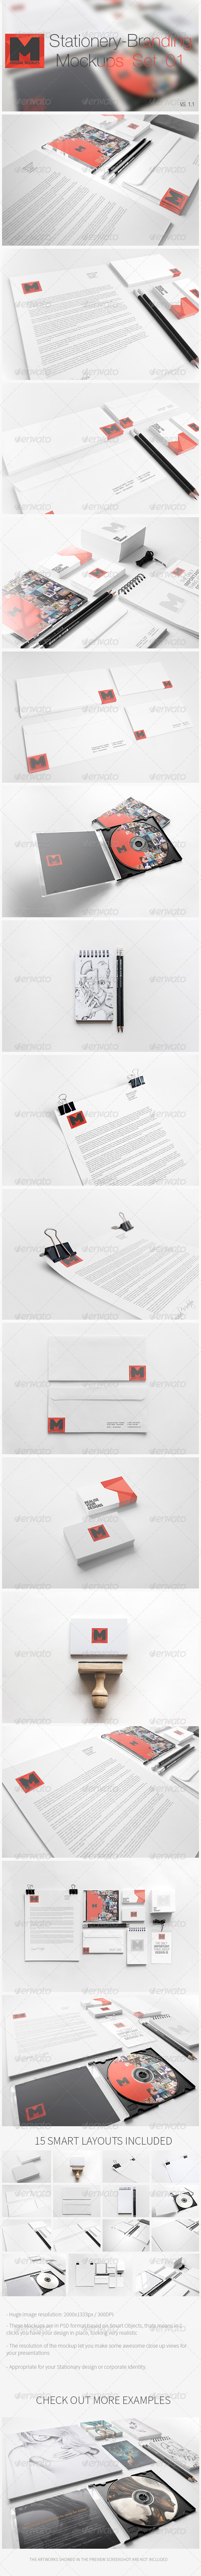 Stationery - Branding Mockups - Set 01 - Print Product Mock-Ups